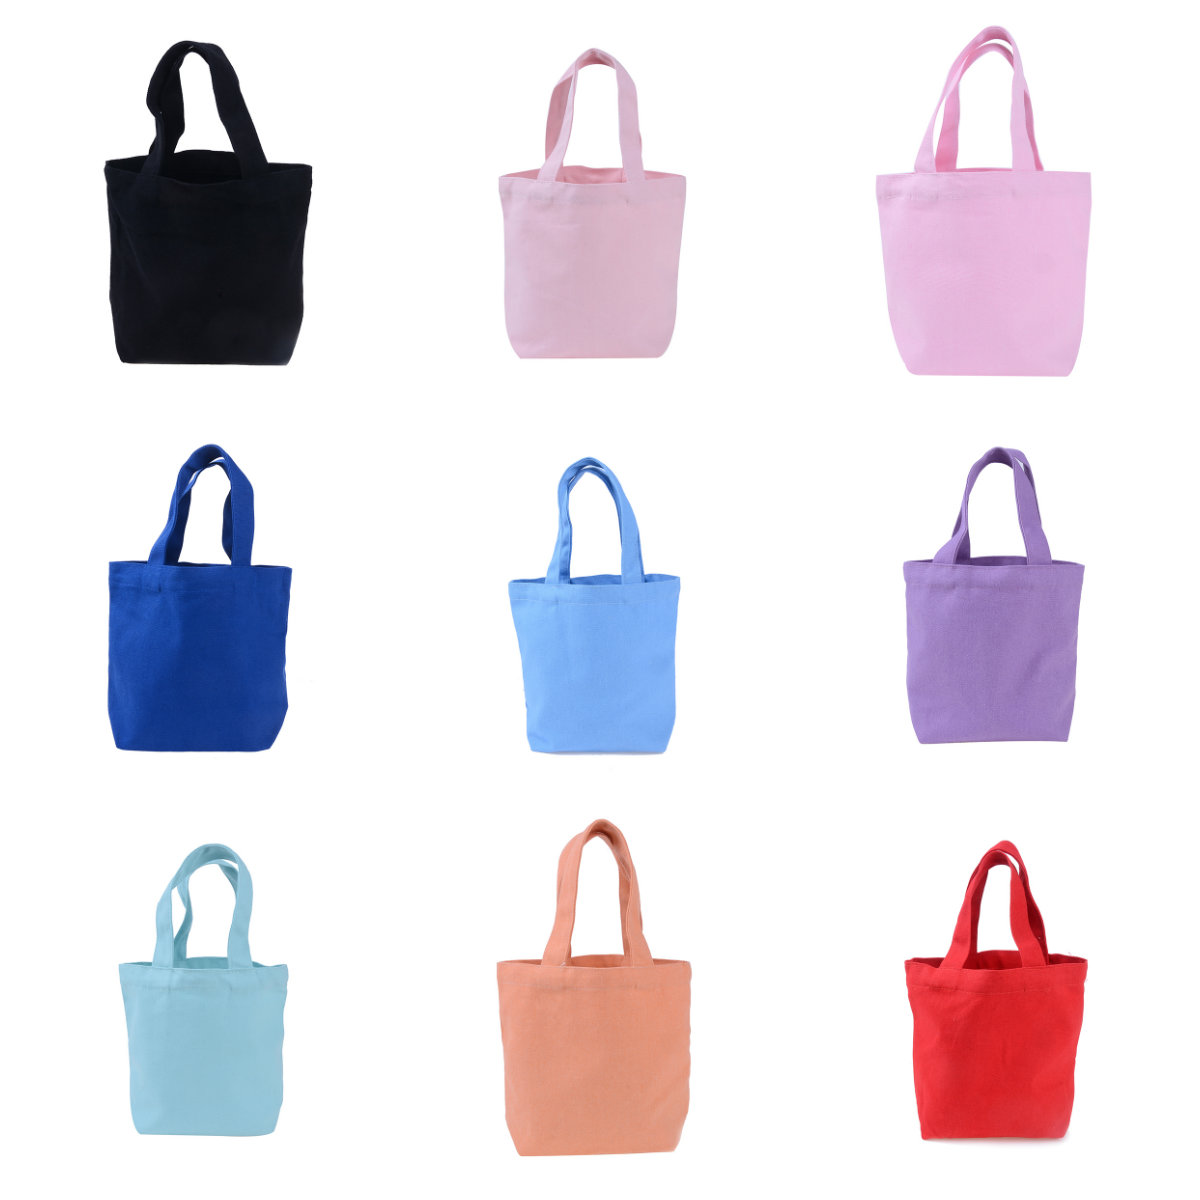 1Pc Portable Lunch Bag Picnic Pouch Storage Tote Solid Color Canvas Handbag Shopping Bag Girl